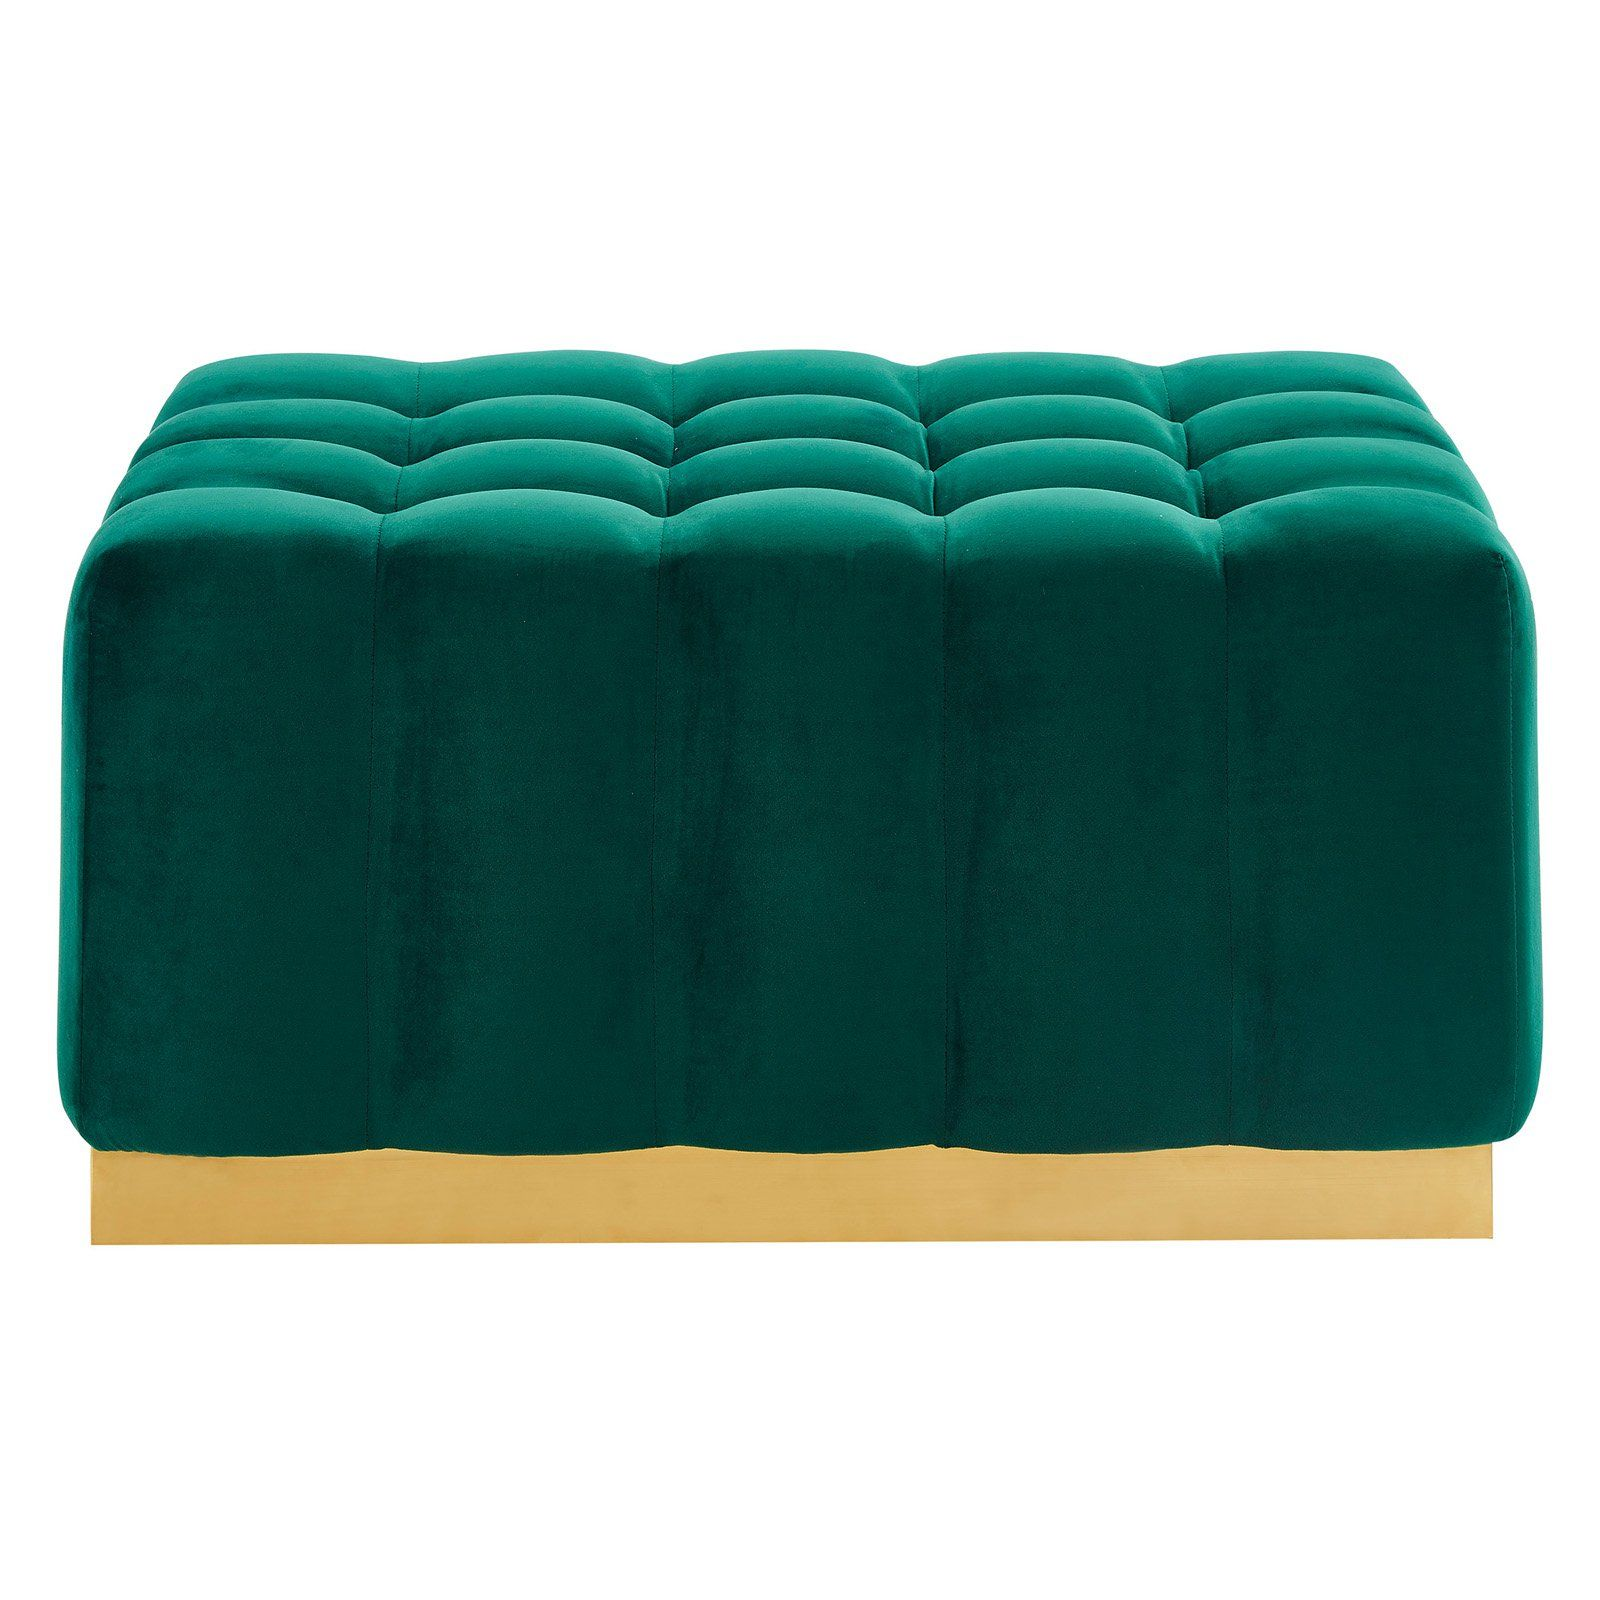 Tremendous Nspire Rectangular Velvet Ottoman Green Gold Products In Squirreltailoven Fun Painted Chair Ideas Images Squirreltailovenorg